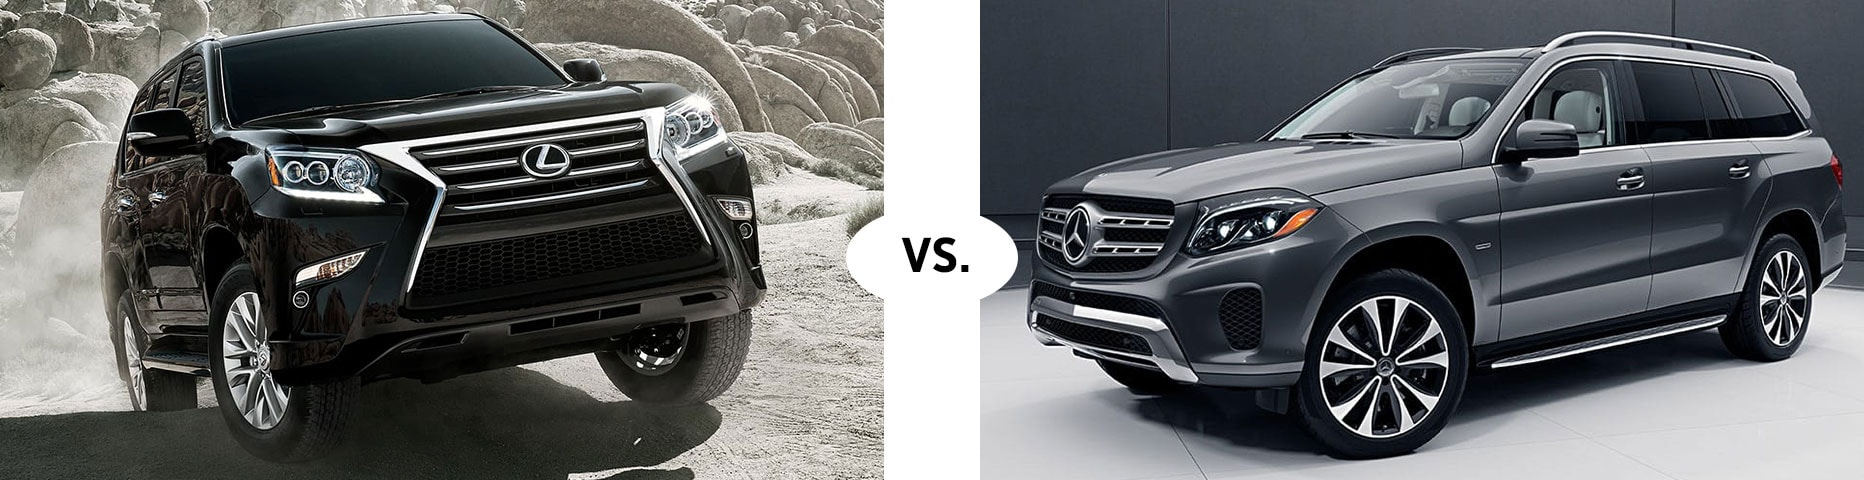 2019 LEXUS GX 460 VS. 2019 MERCEDES BENZ GLS 450